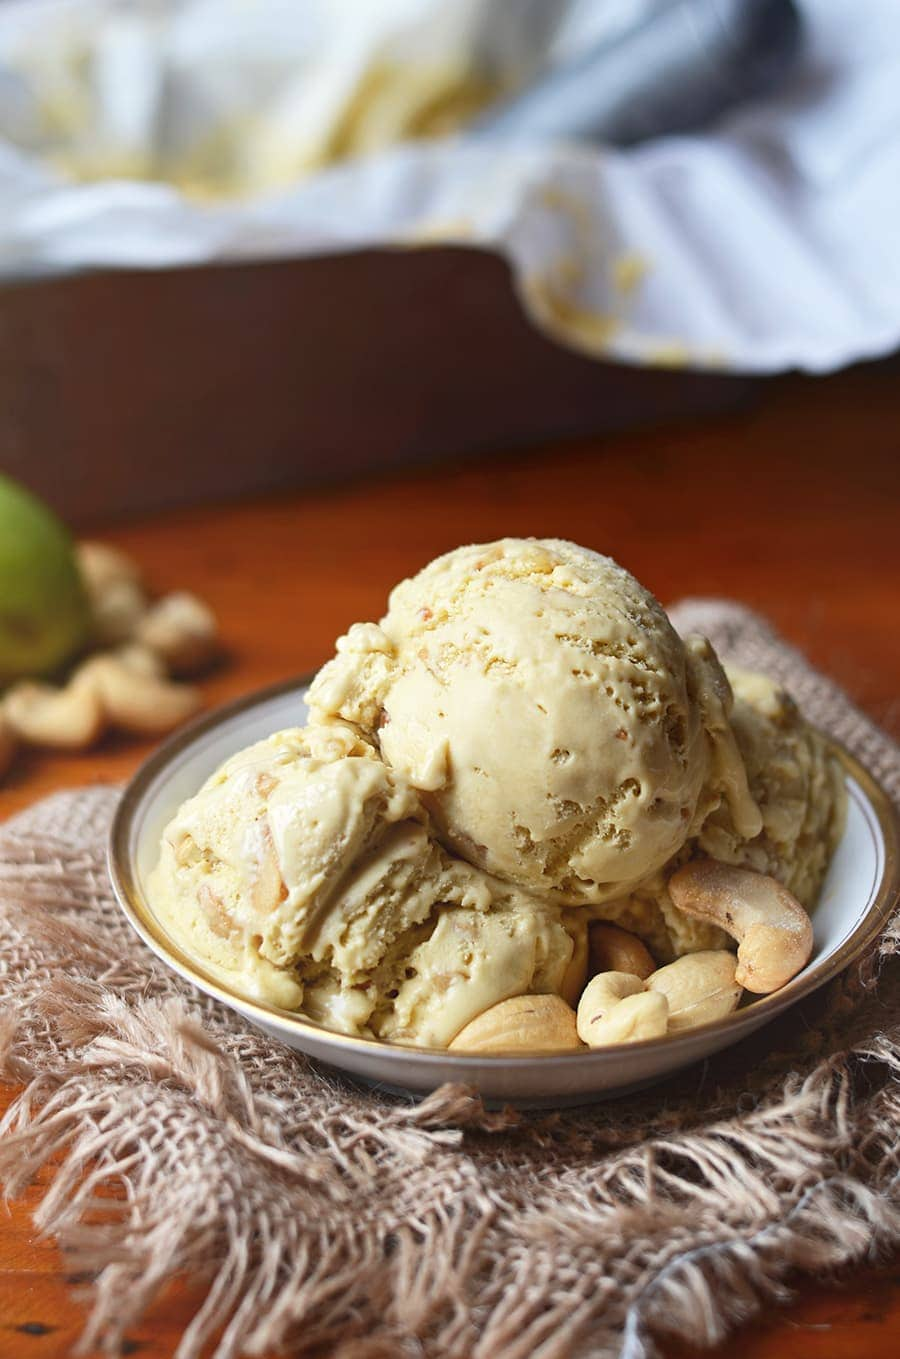 Caramel Cashew Pawpaw Ice Cream 2 Web - Salted Caramel Pawpaw Ice Cream </br> with Cashew Praline Crunch